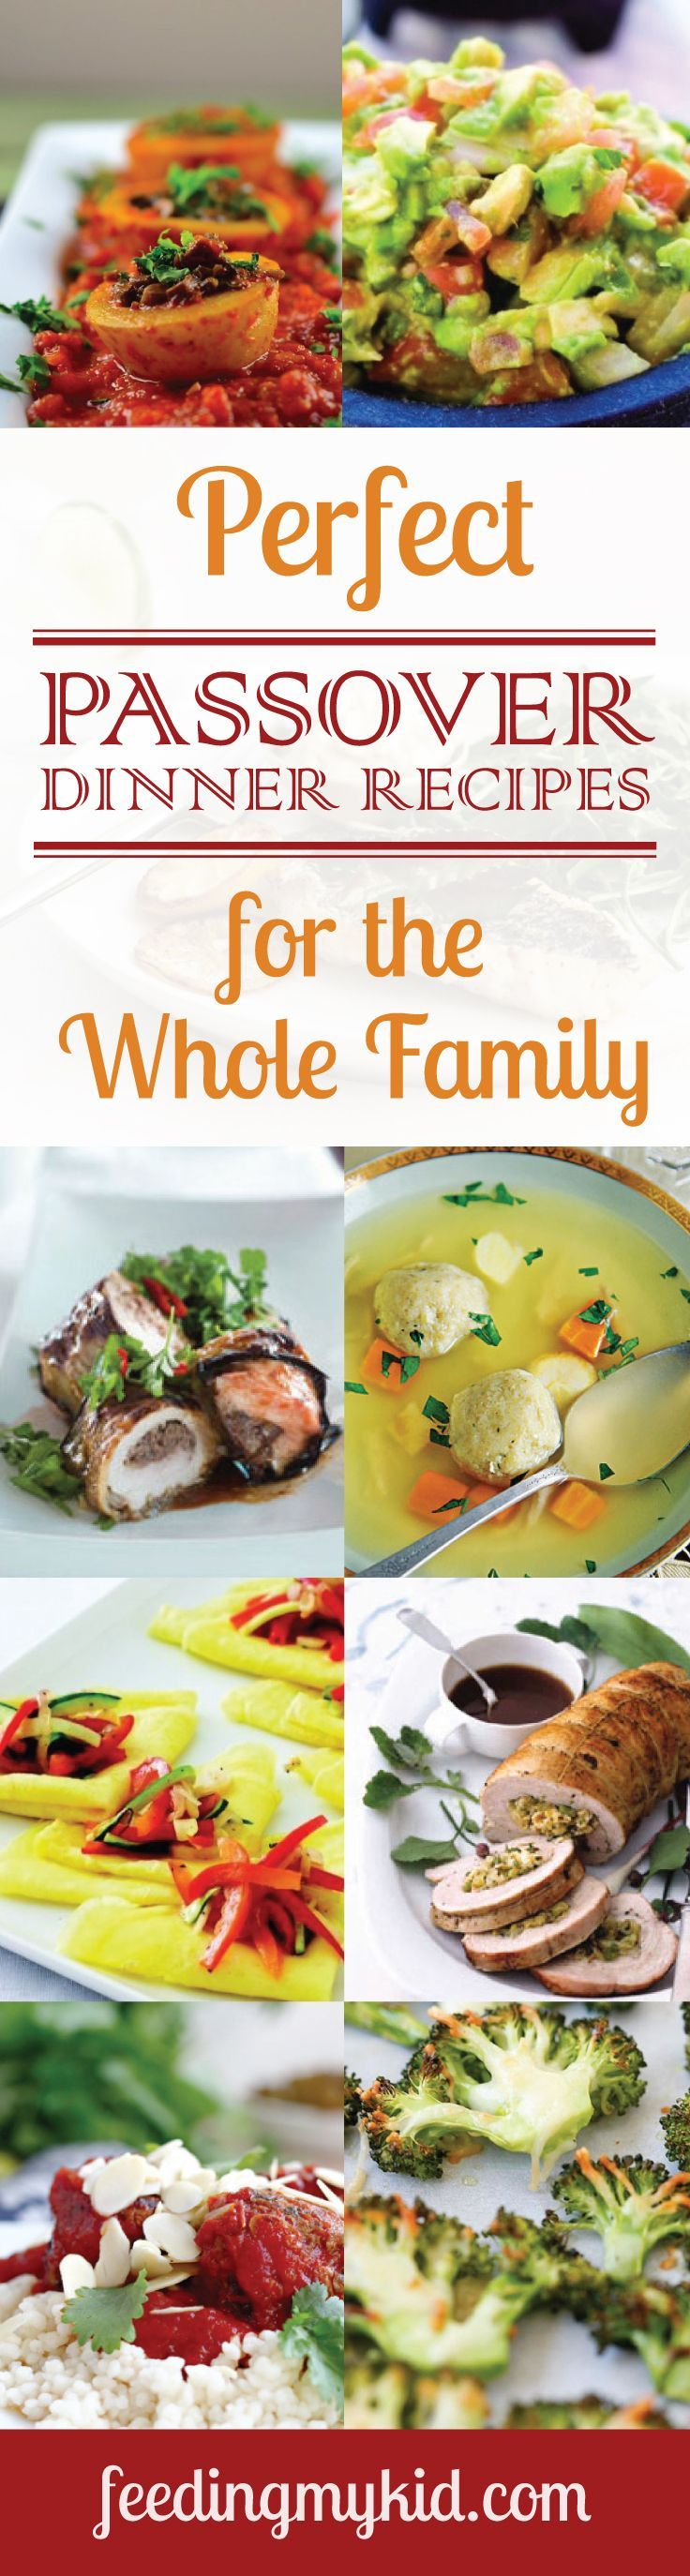 2056 best jewish home and life images on pinterest israel perfect passover bread recipes for the whole family passover is the celebration of the jewish biocorpaavc Image collections